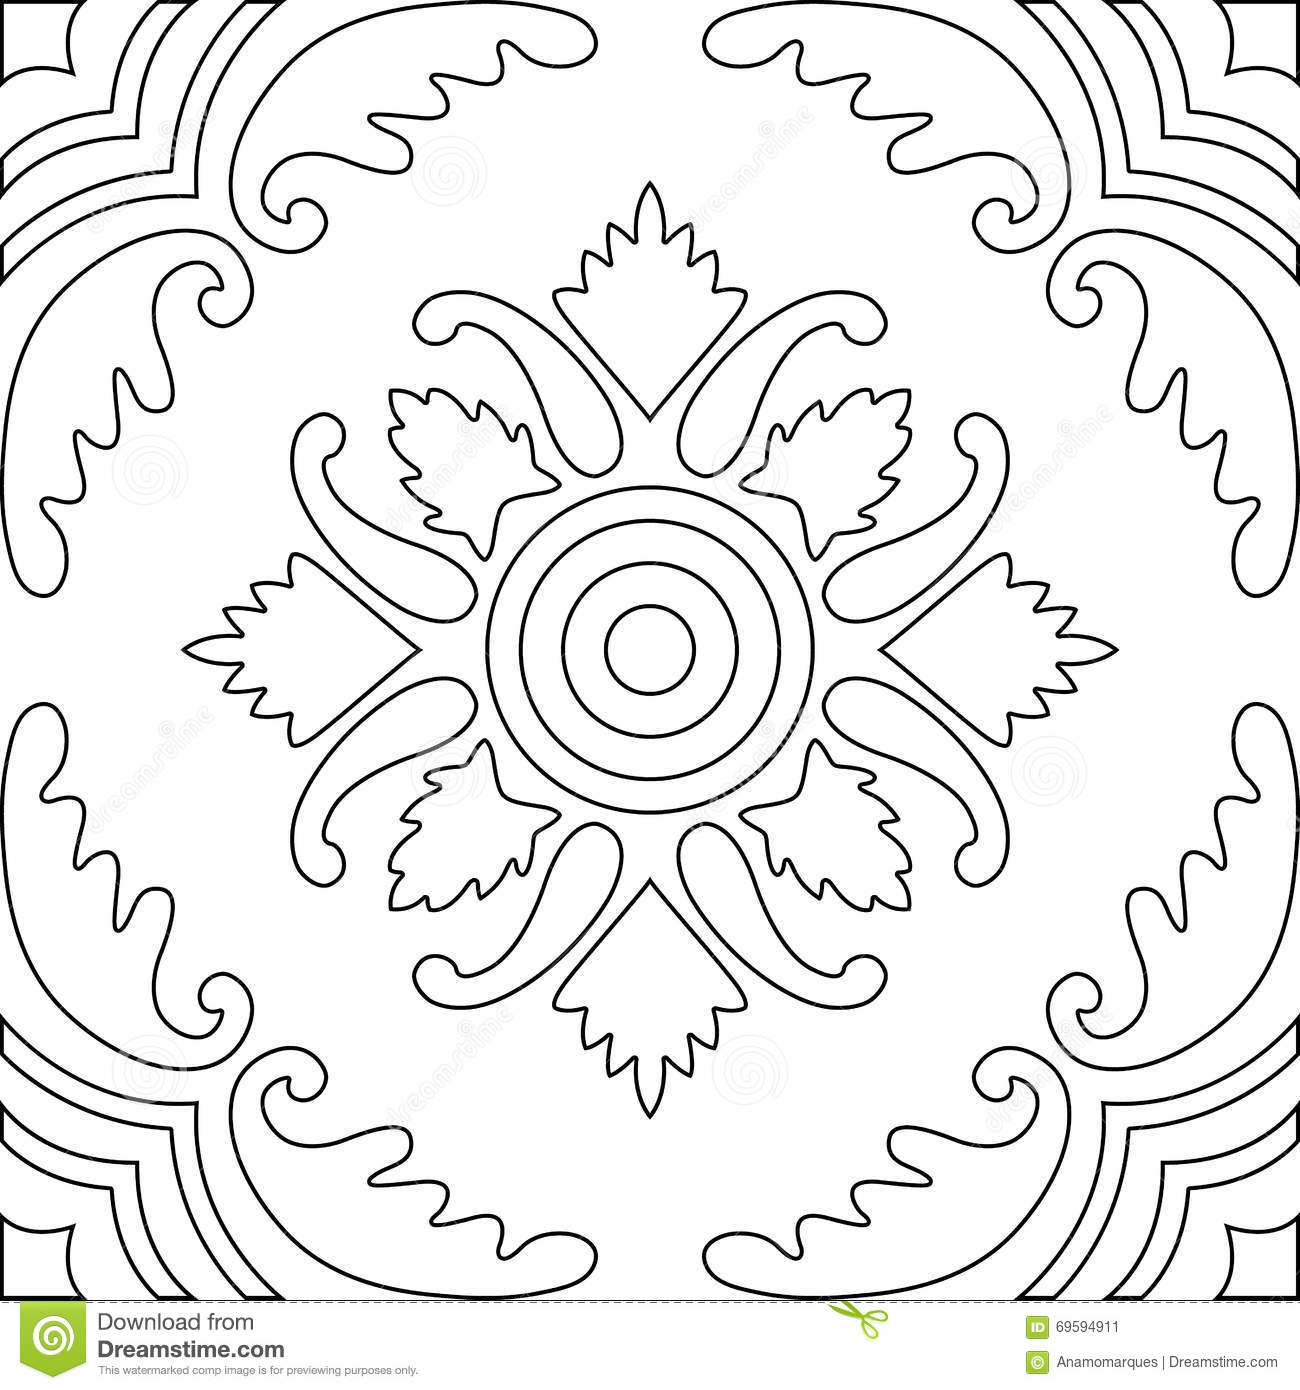 Unique coloring book square page for adults seamless for Unique coloring pages for adults